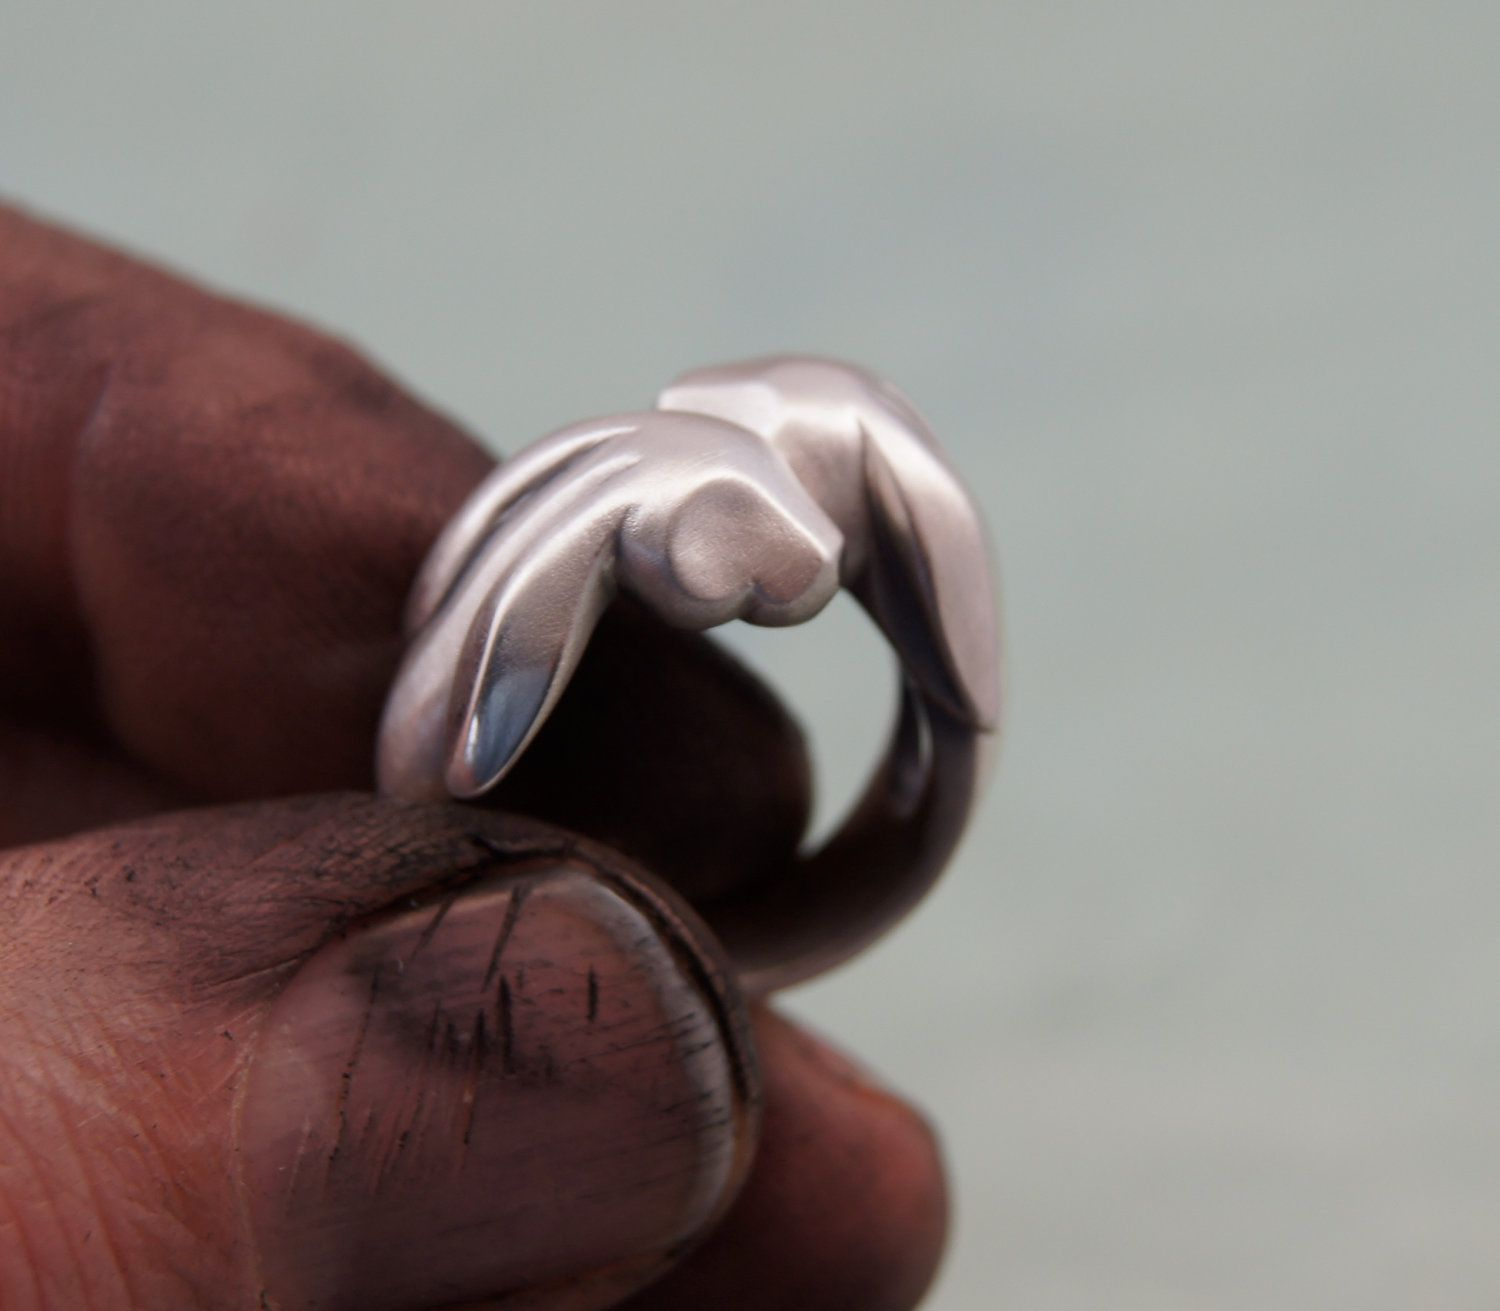 9a3e2c3d6d2b9 Bunny love ring, silver | Fashion/ Jewelry | Pinterest | Rings ...